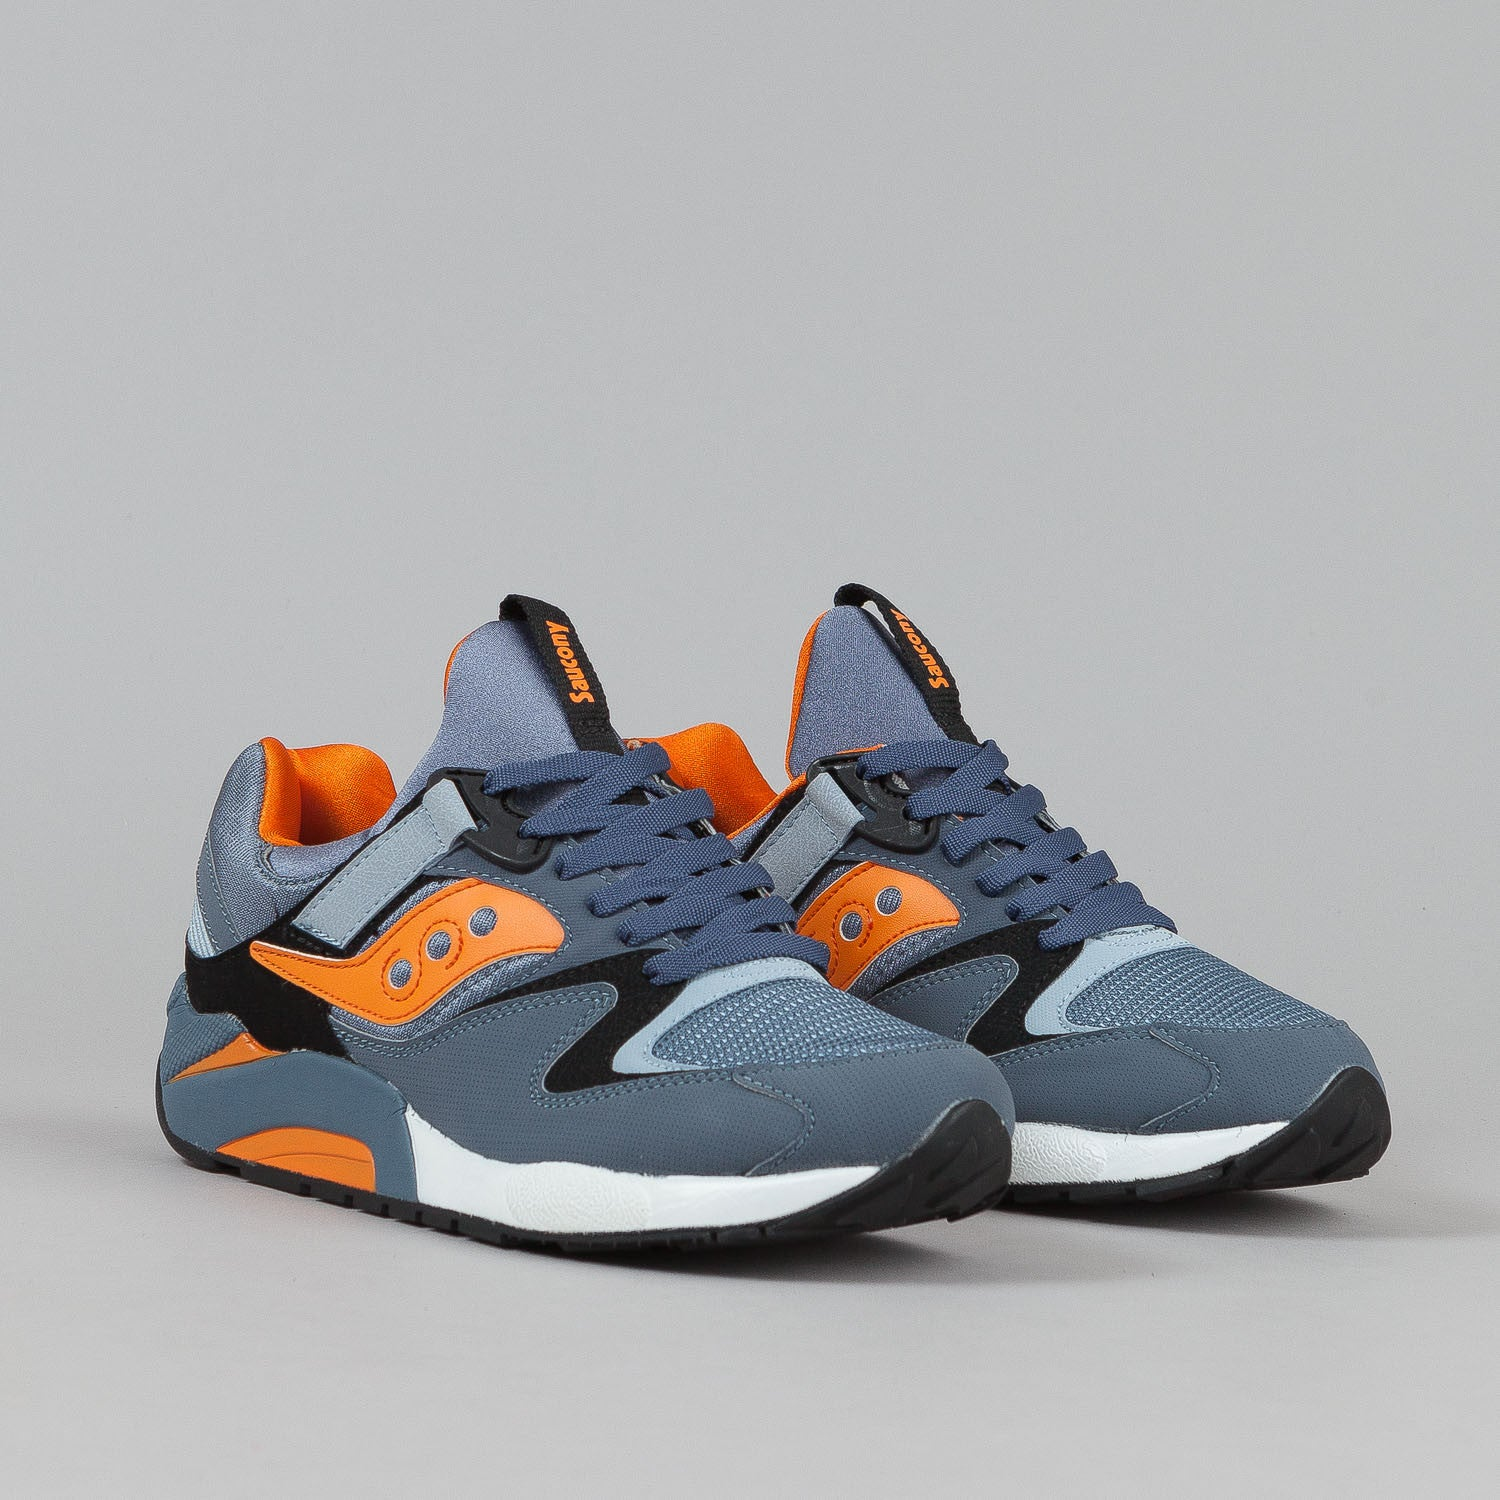 Saucony Grid 9000 Shoes - Blue / Orange / Black